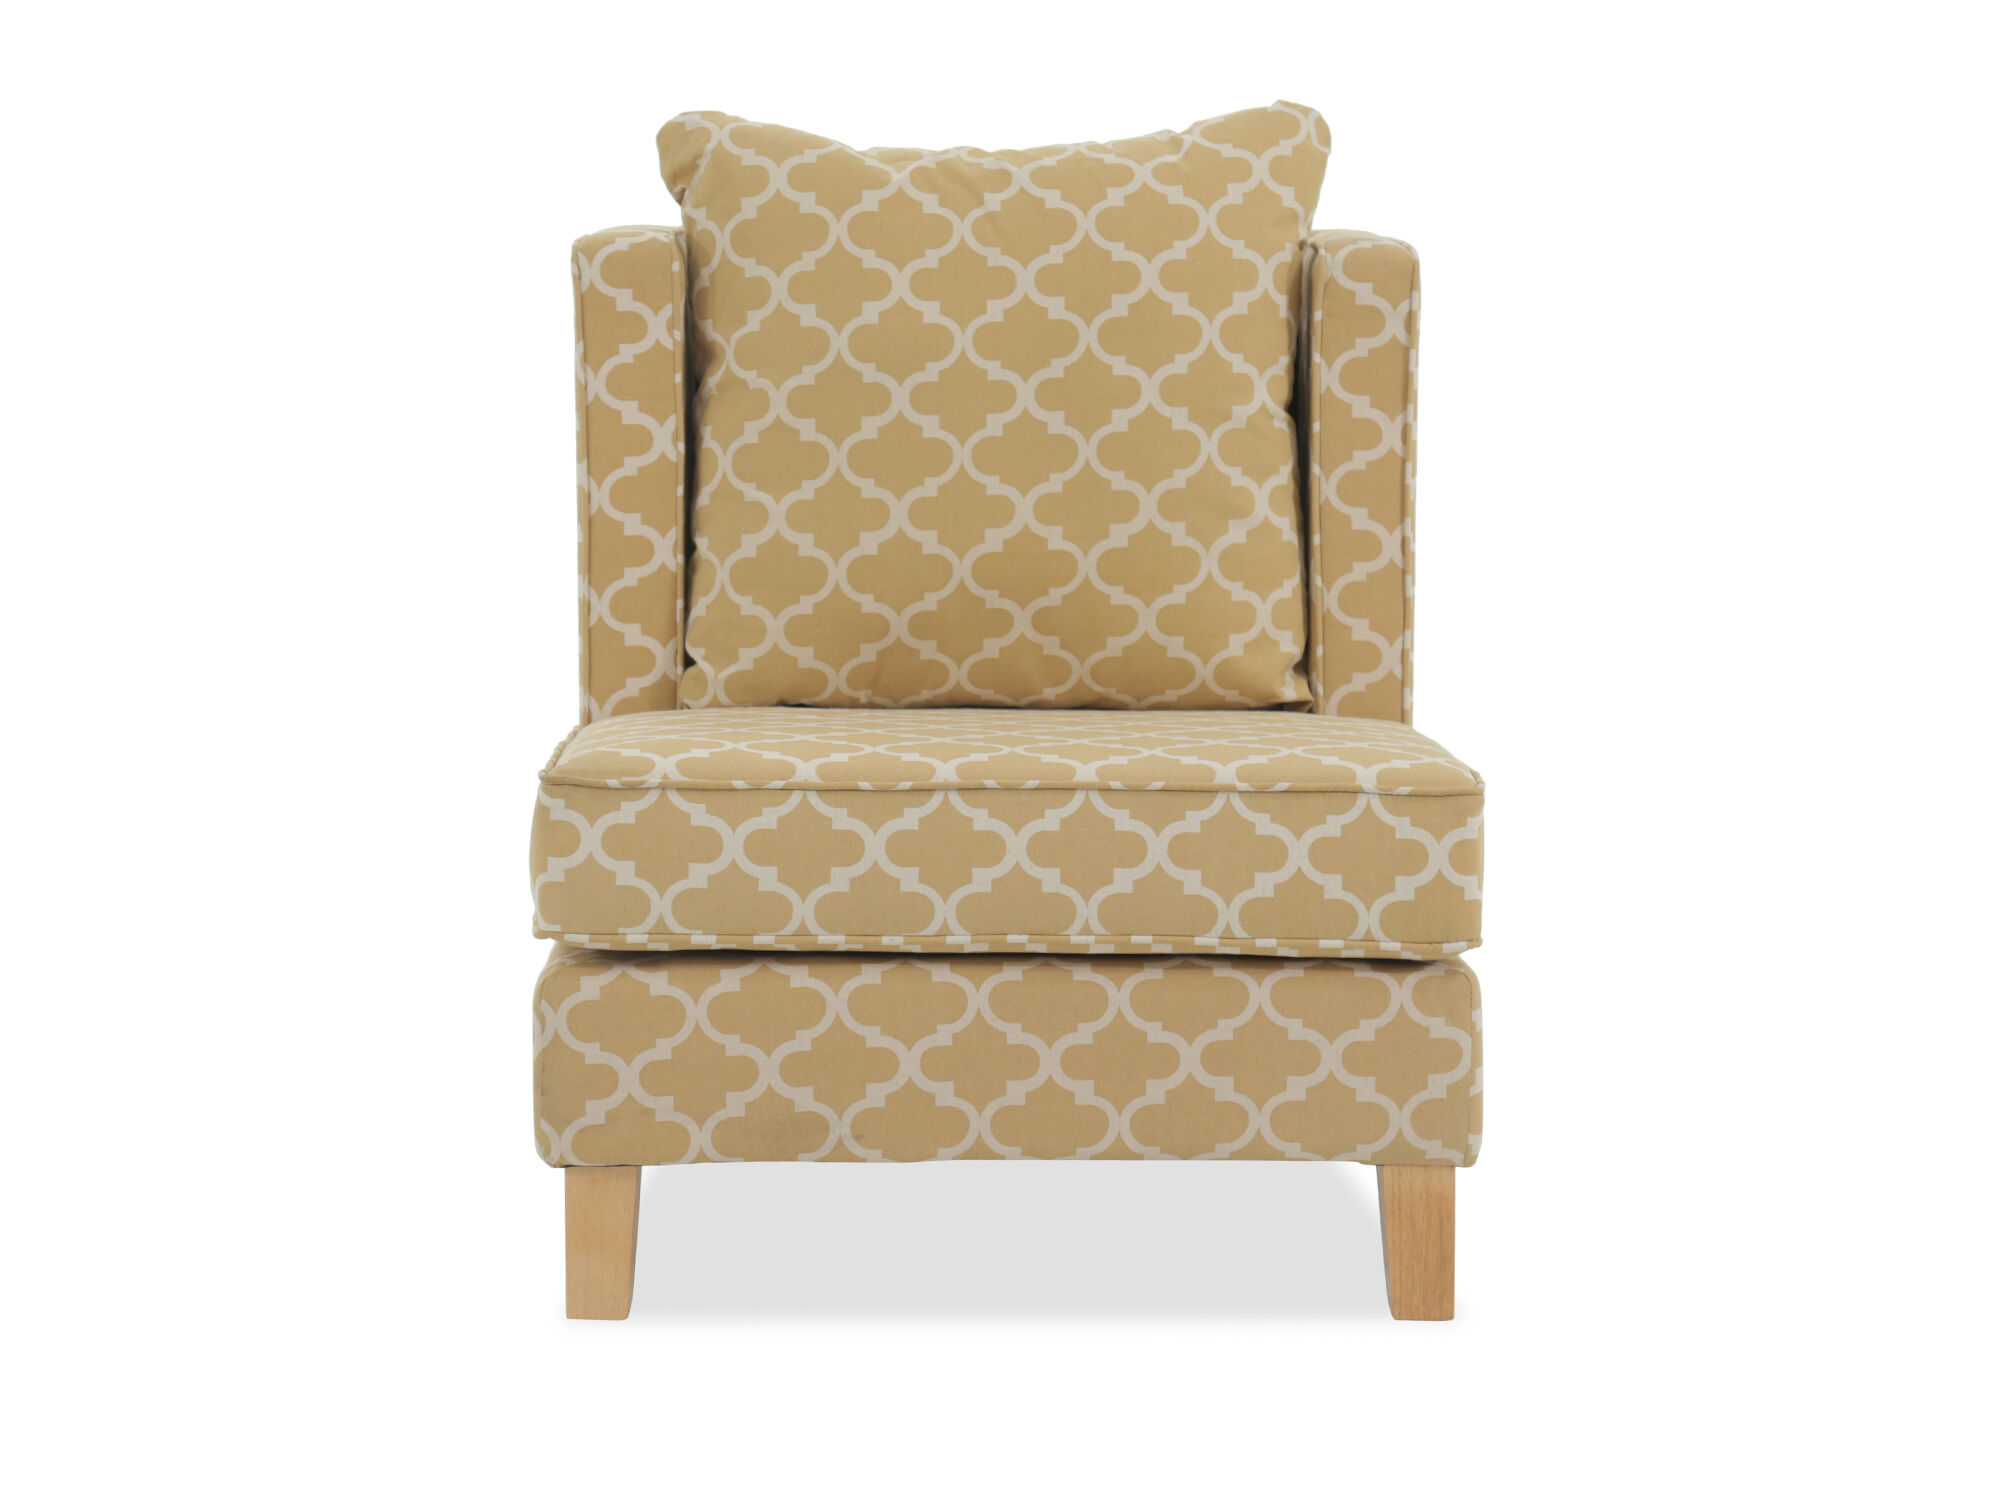 Mustard Accent Chair Trellis Patterned Casual 31 Quot Accent Chair In Mustard